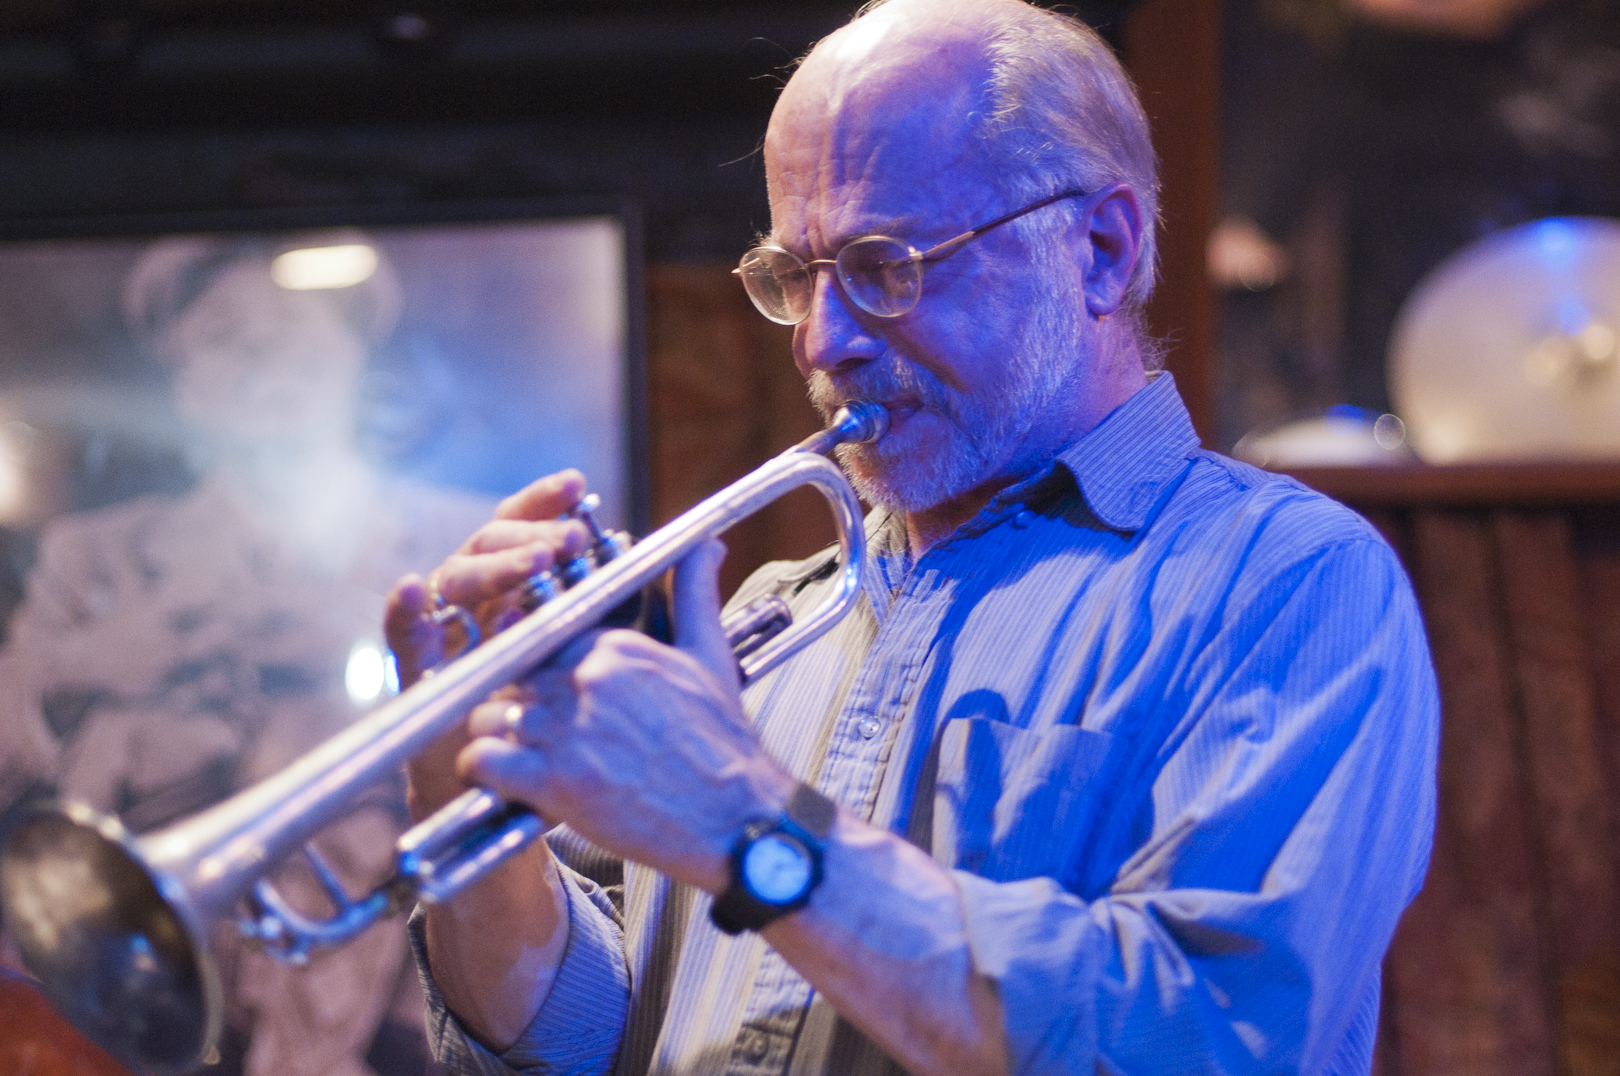 John Eckert with the Lew Tabackin Quartet at Smalls Jazz Club